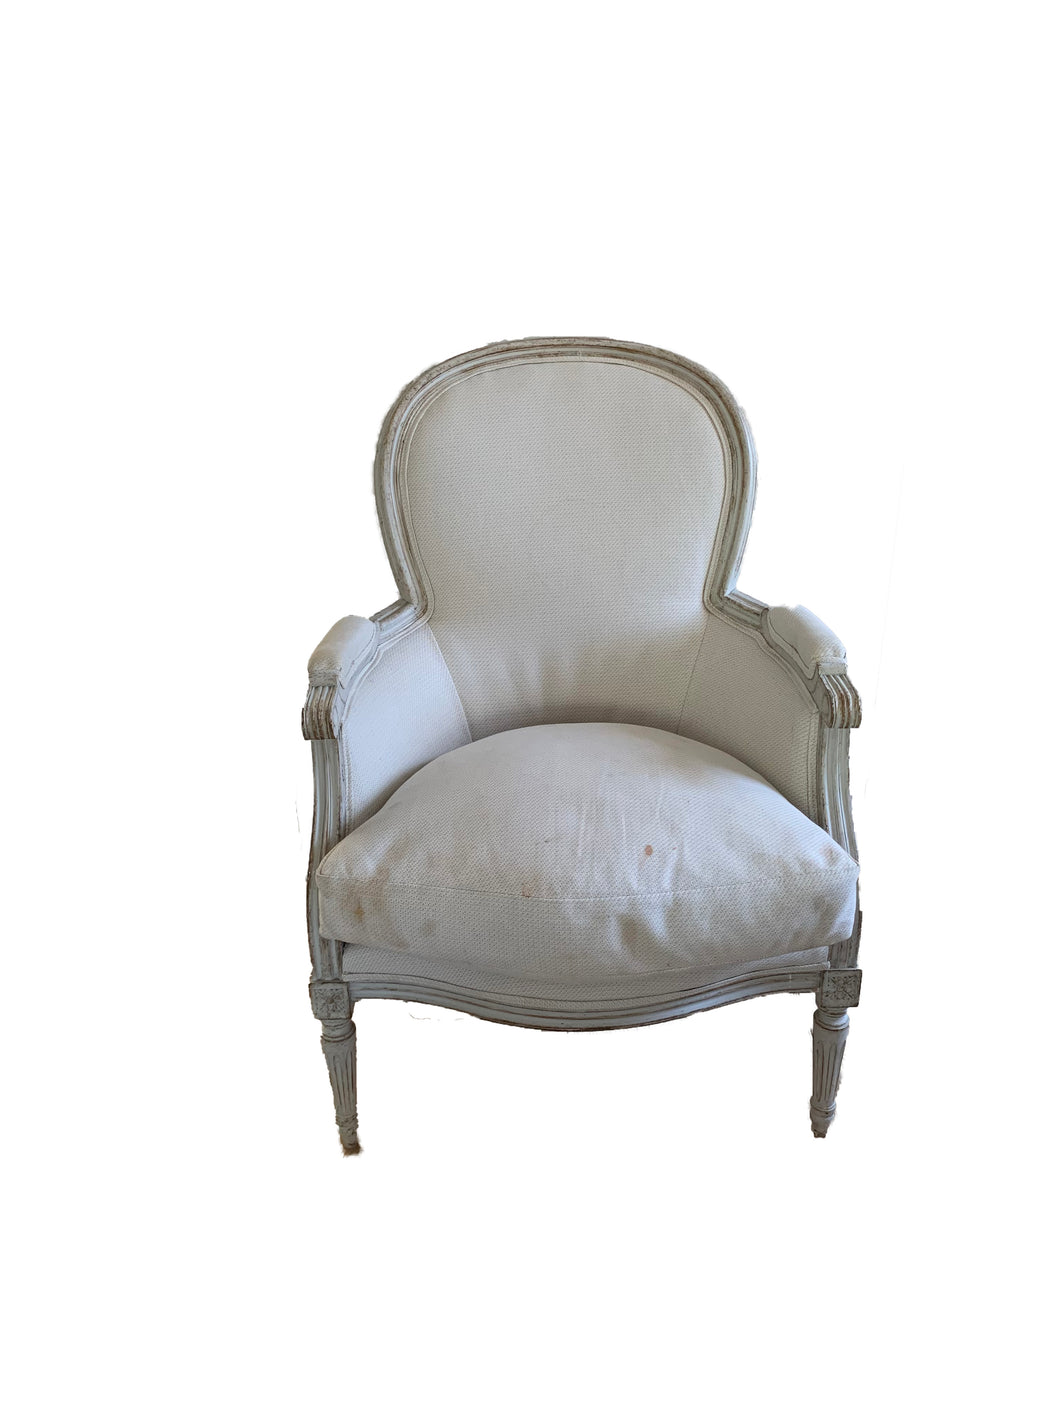 SWEDISH UPHOLSTERED CHAIR